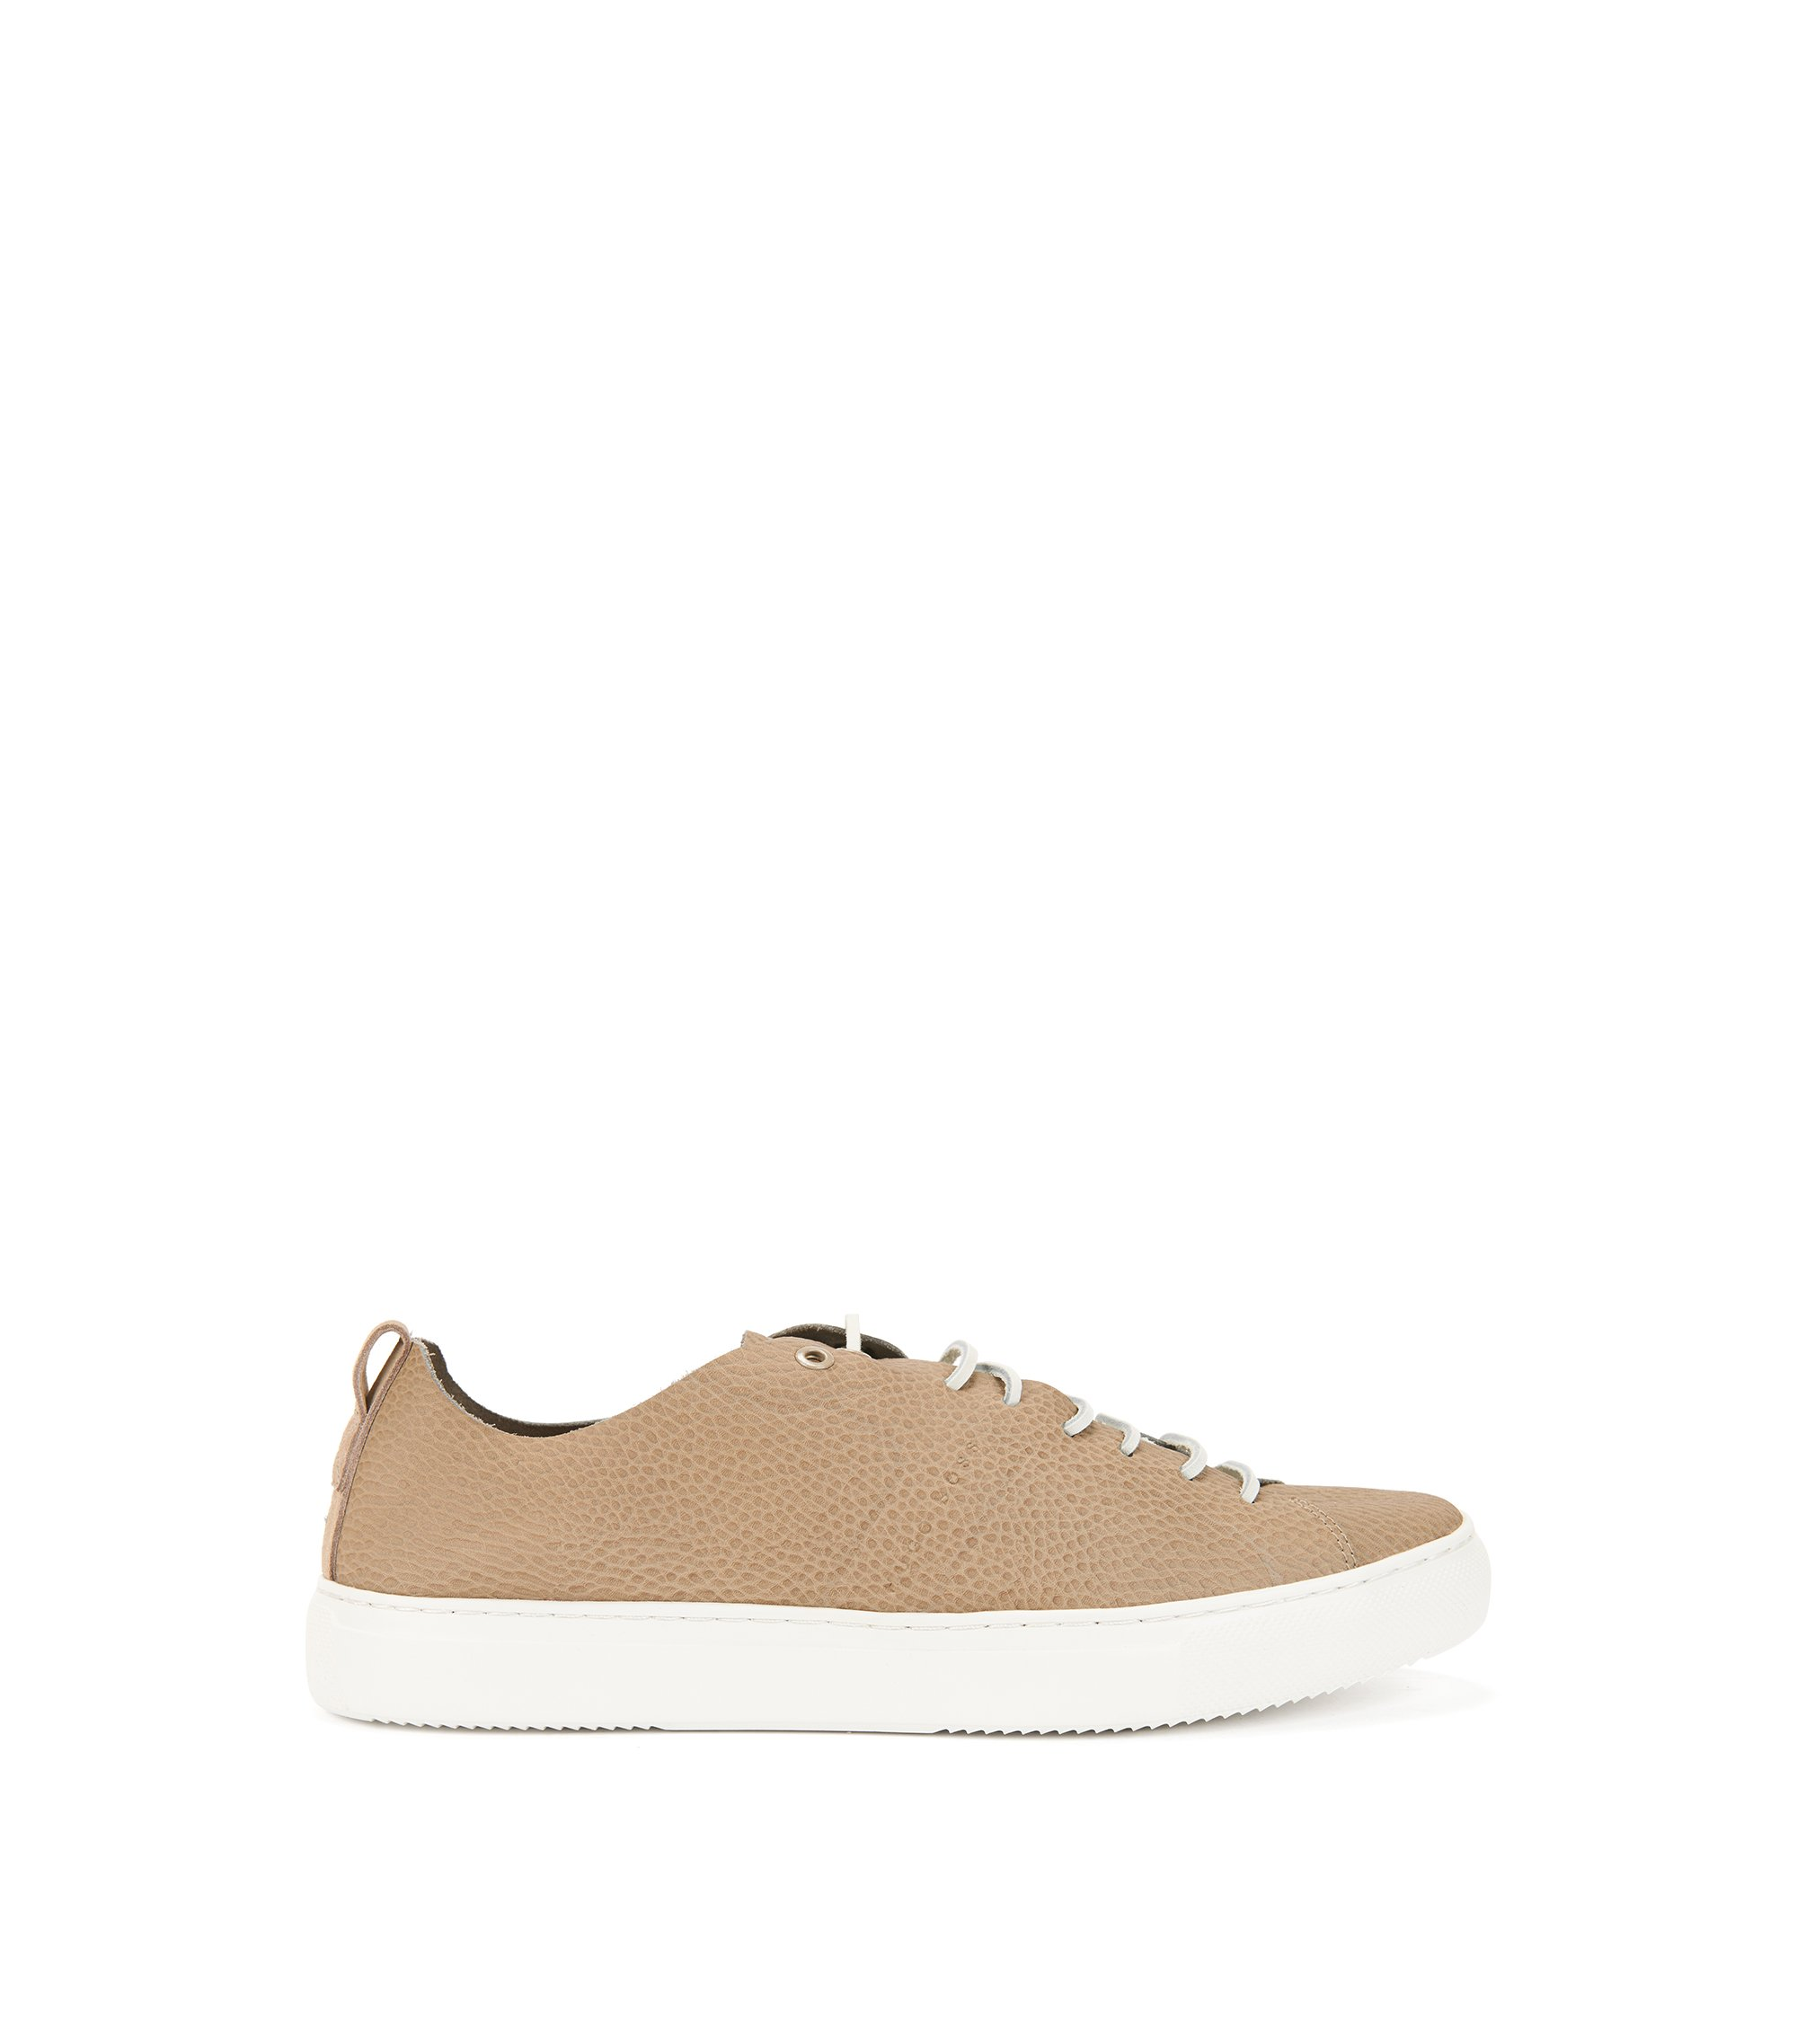 Tennis-style sneakers in tumbled calf leather, Beige